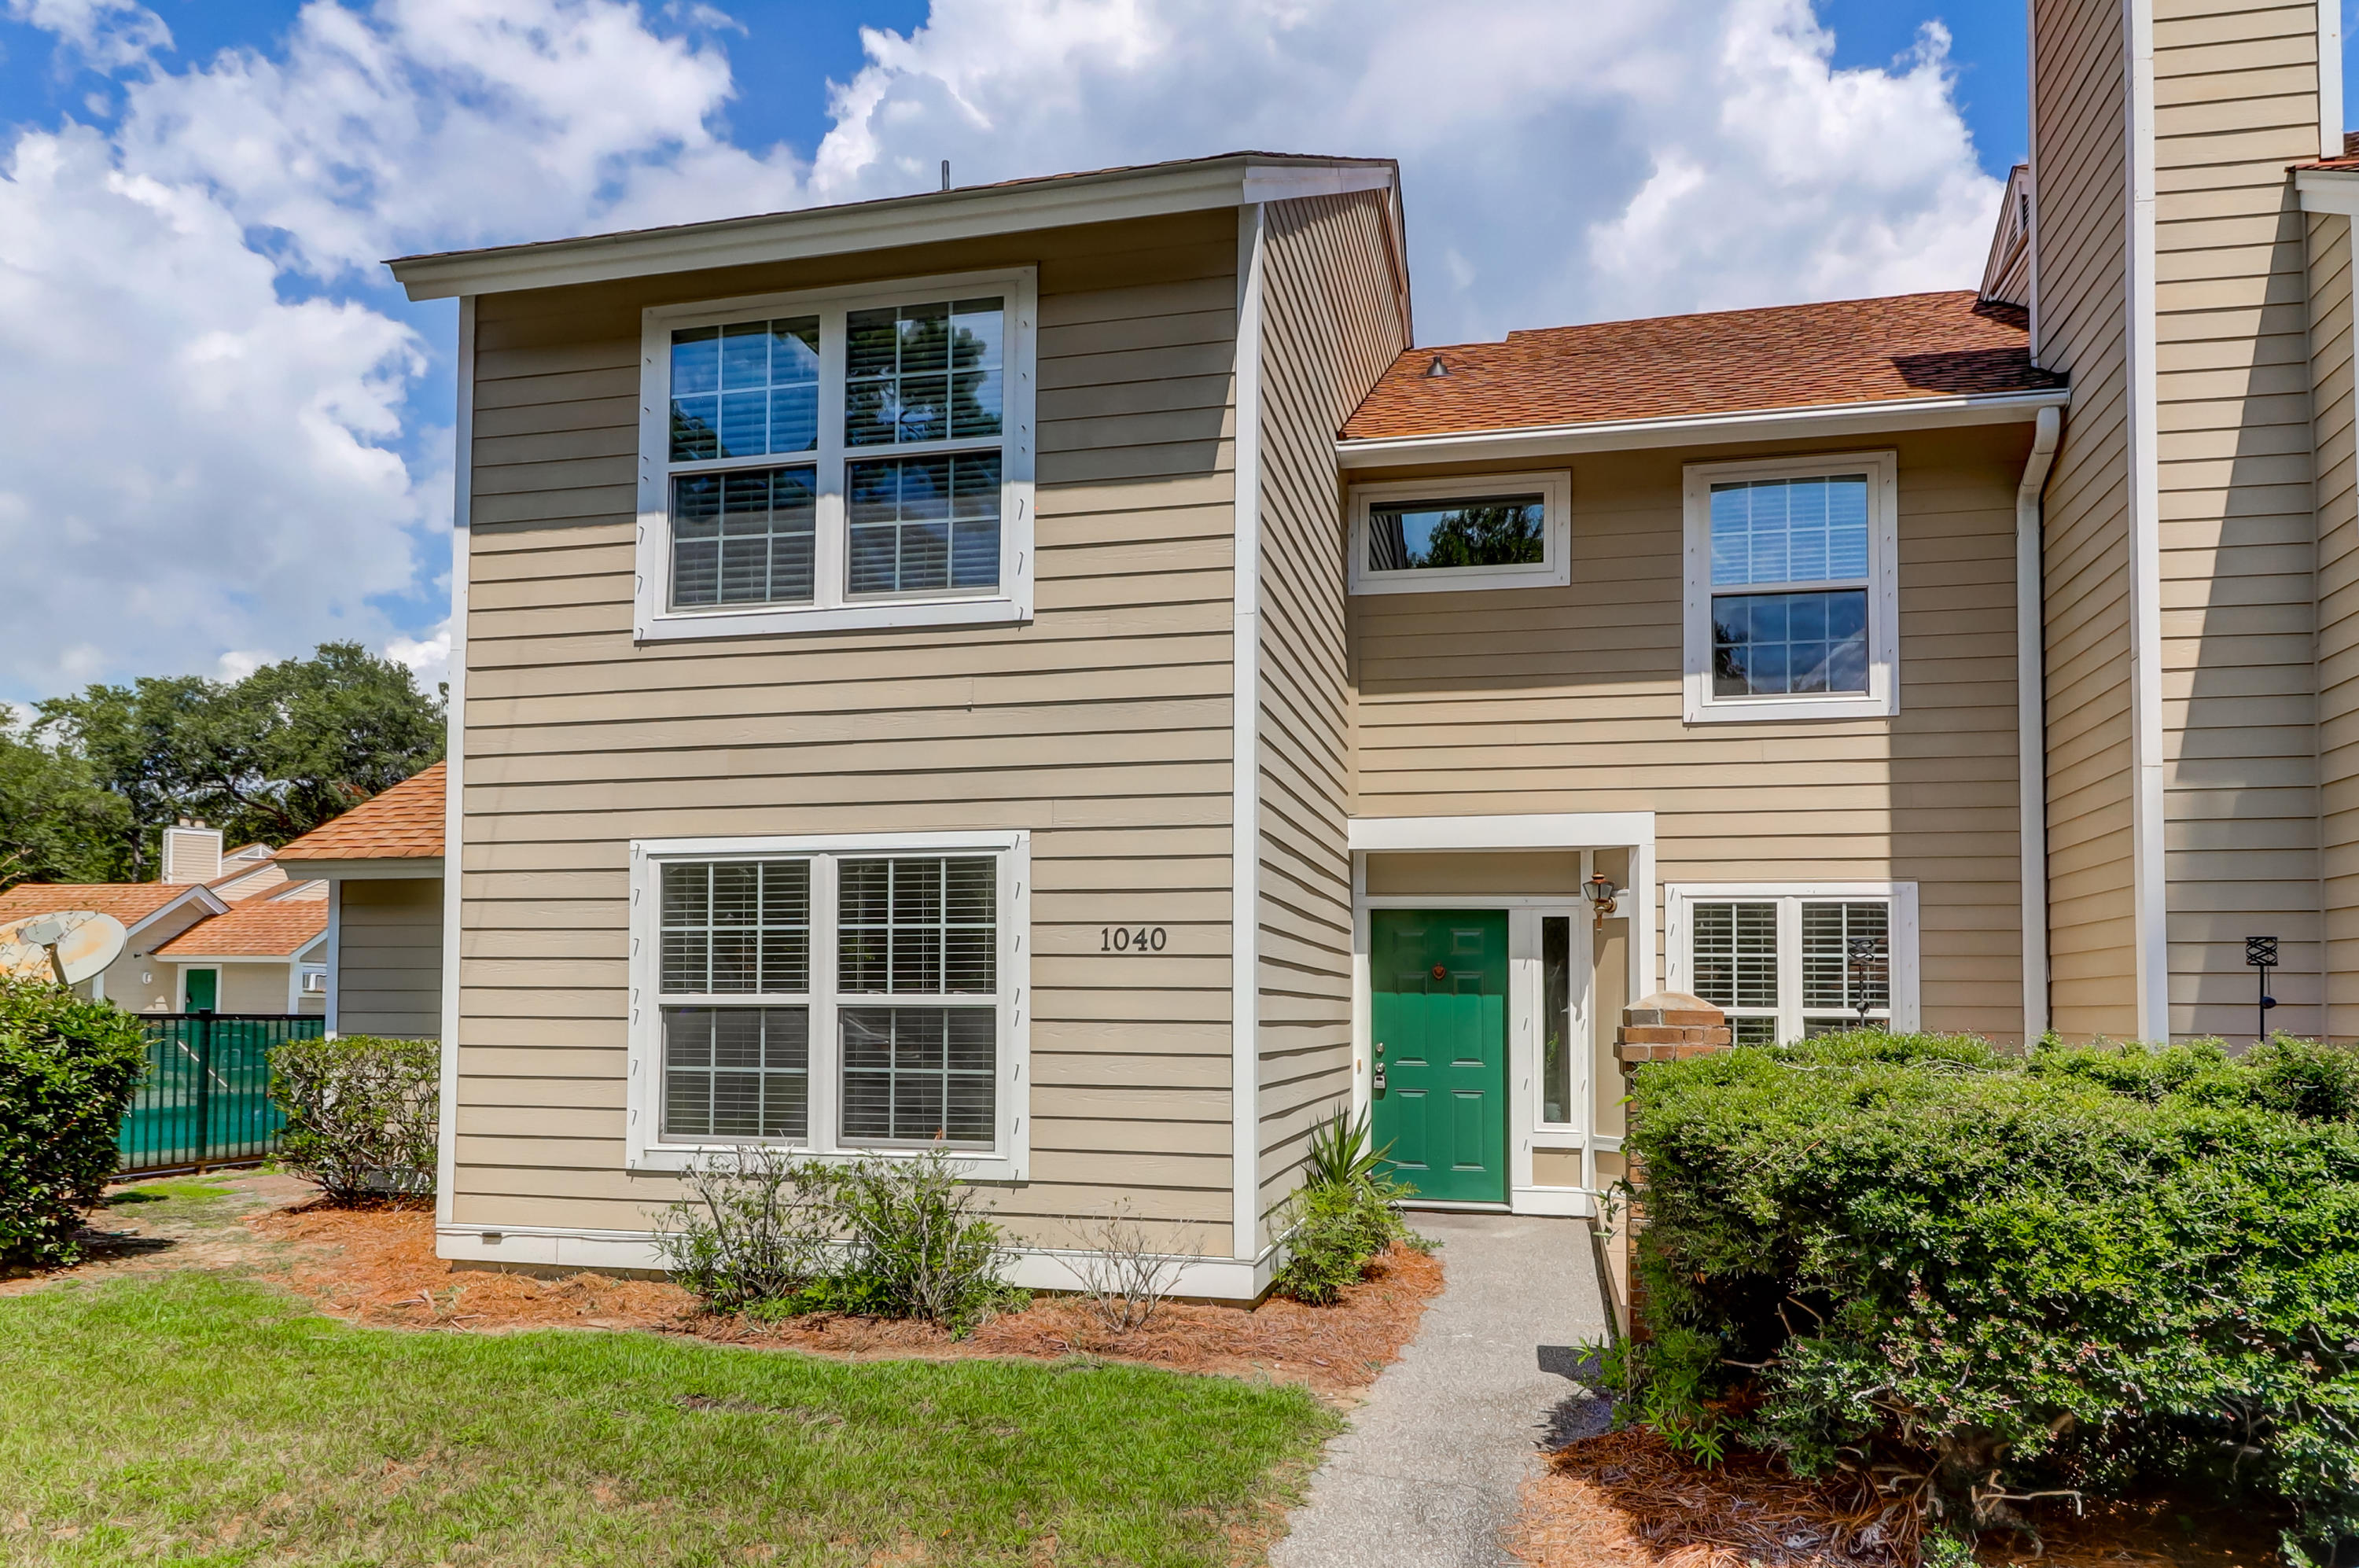 1040 Planters Place, Mount Pleasant, 29464, 2 Bedrooms Bedrooms, ,2 BathroomsBathrooms,Residential,For Sale,Planters,21022862